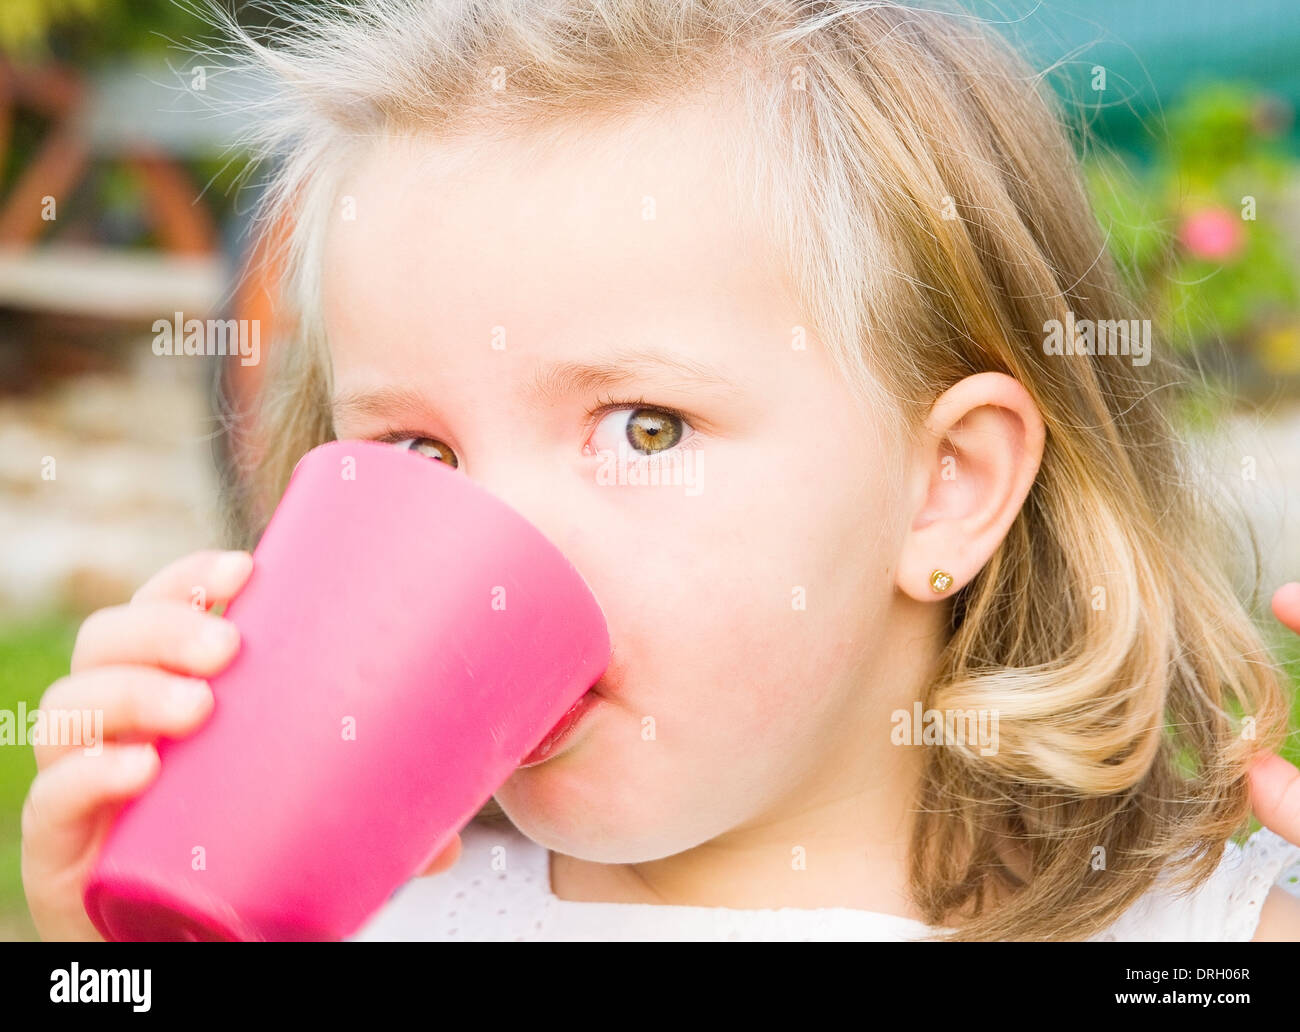 Little girl drinking, The girl is looking at camera. - Stock Image